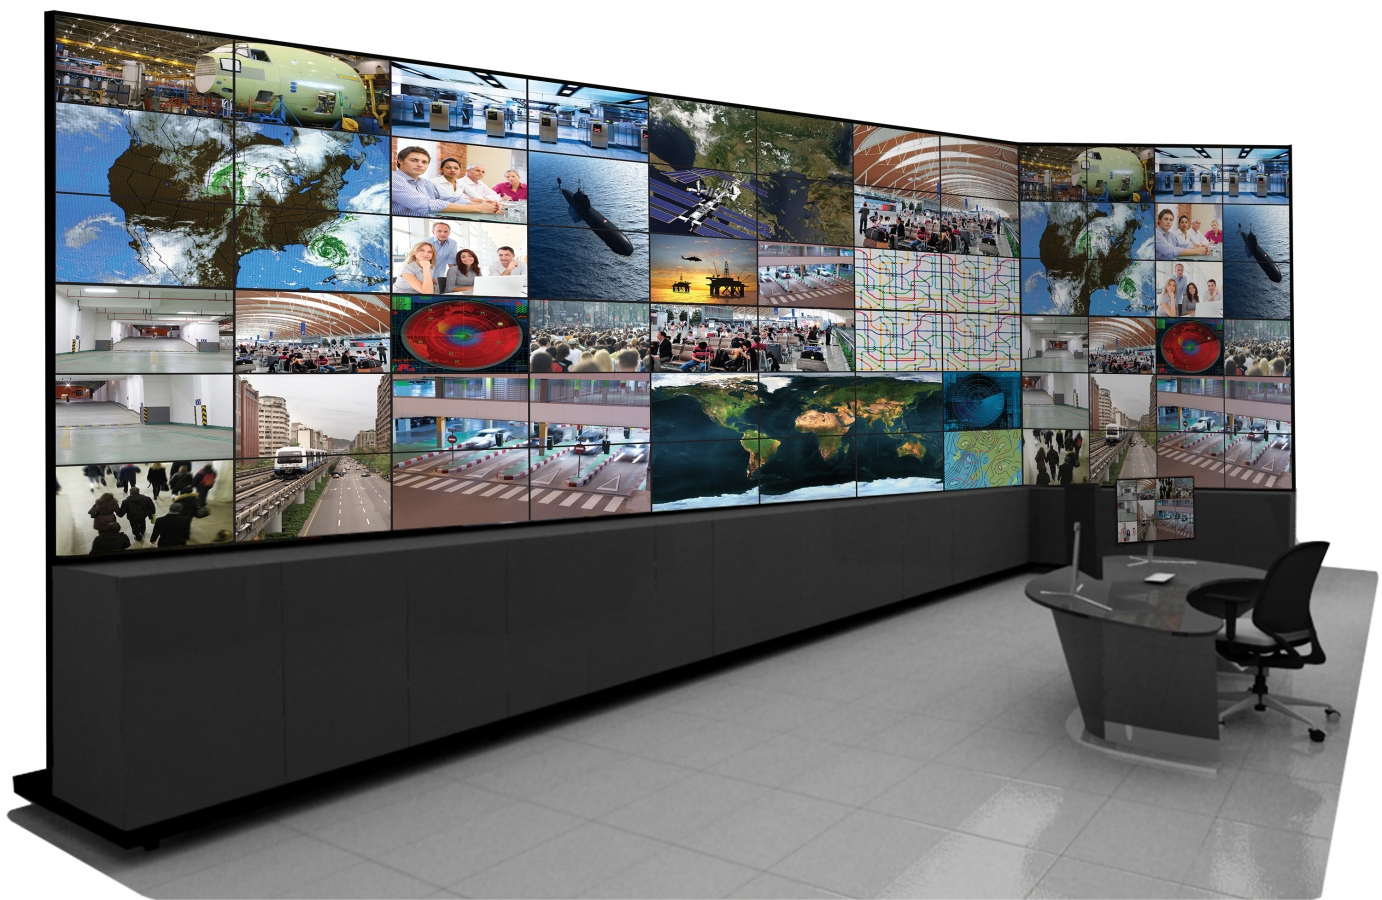 The Challenge of Displaying Hundreds of IP Cameras on a Video Wall